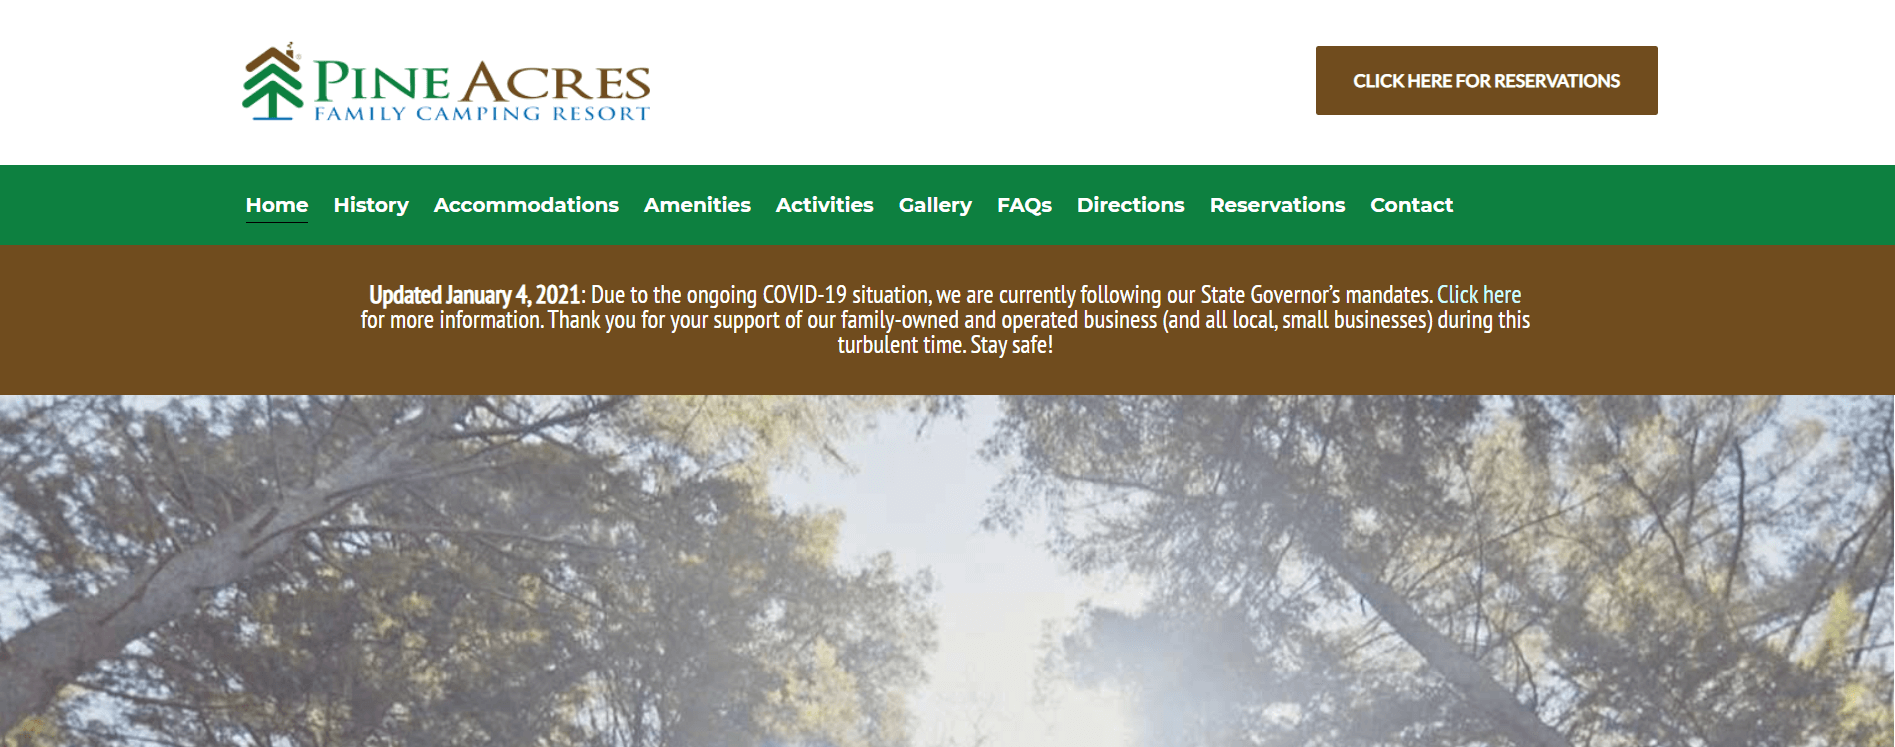 pine acres home page